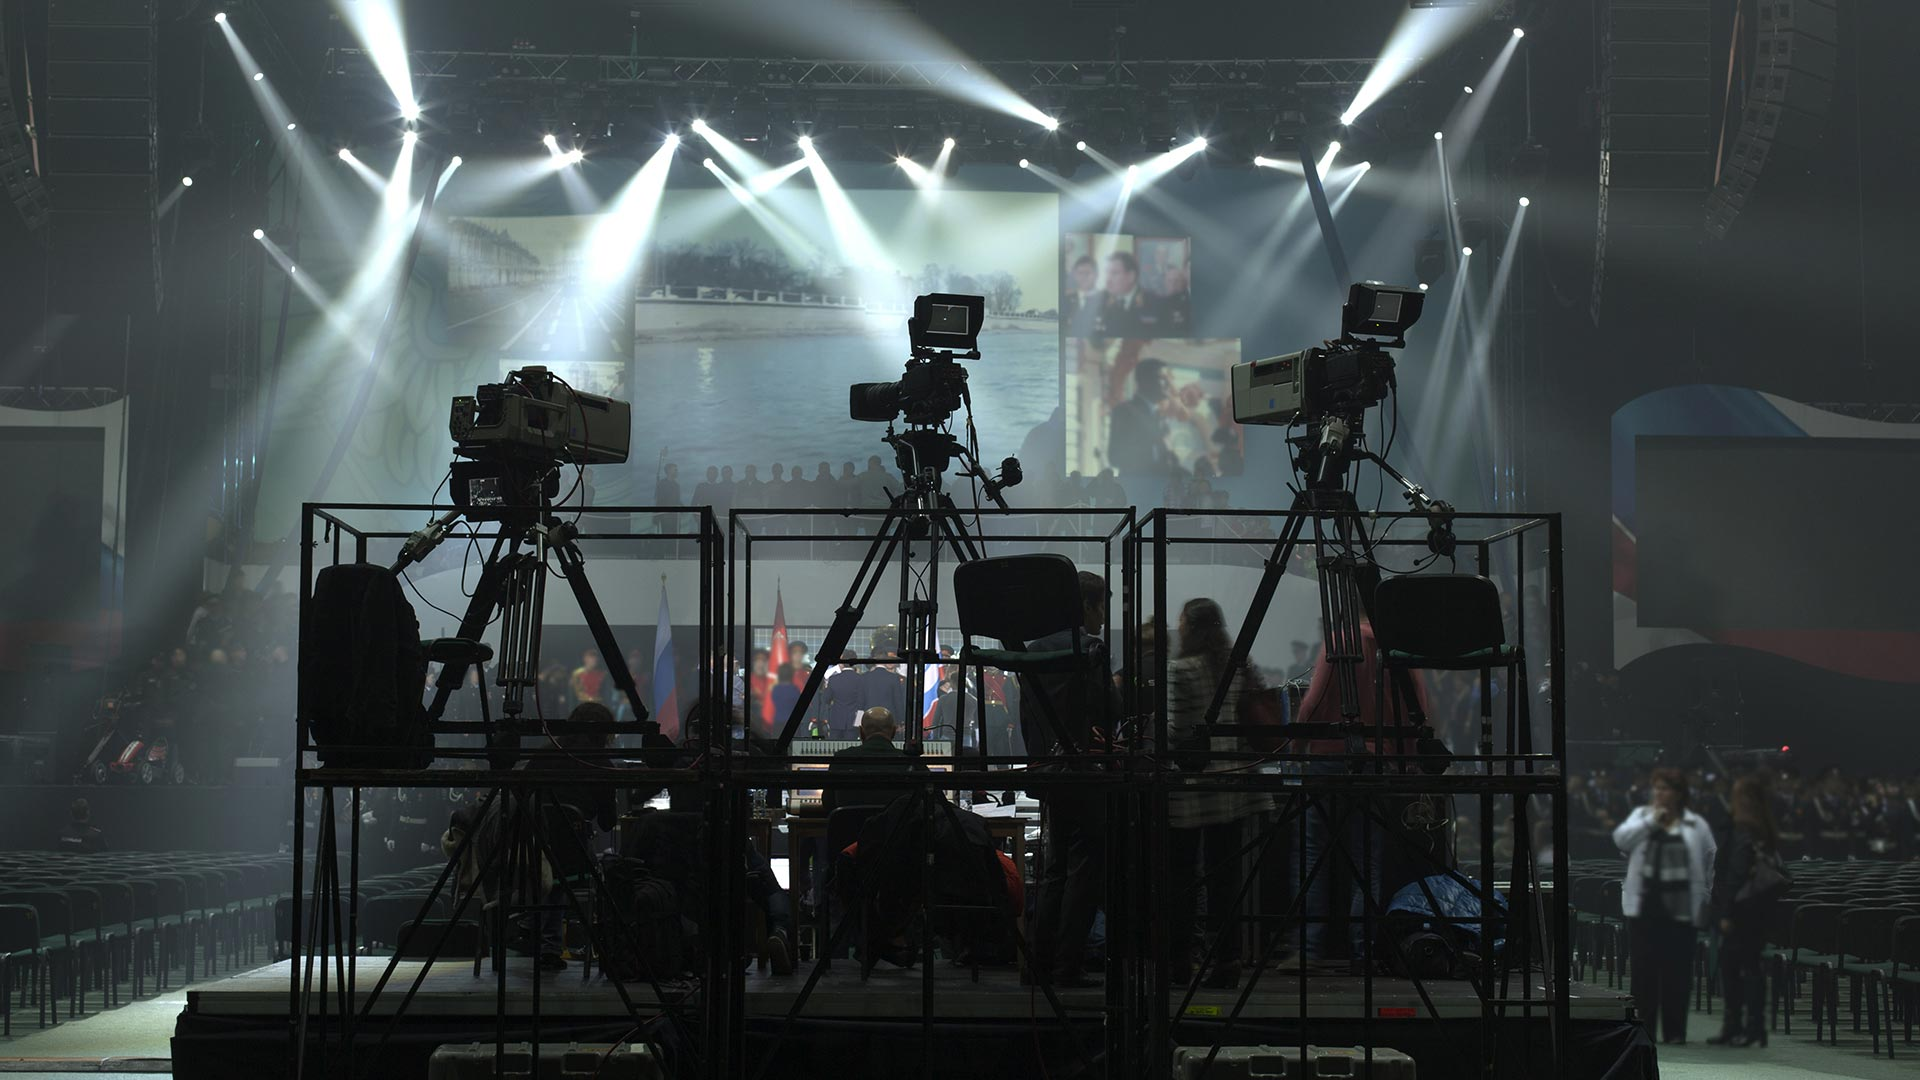 Corporate Videos In Dubai: How To Get Started